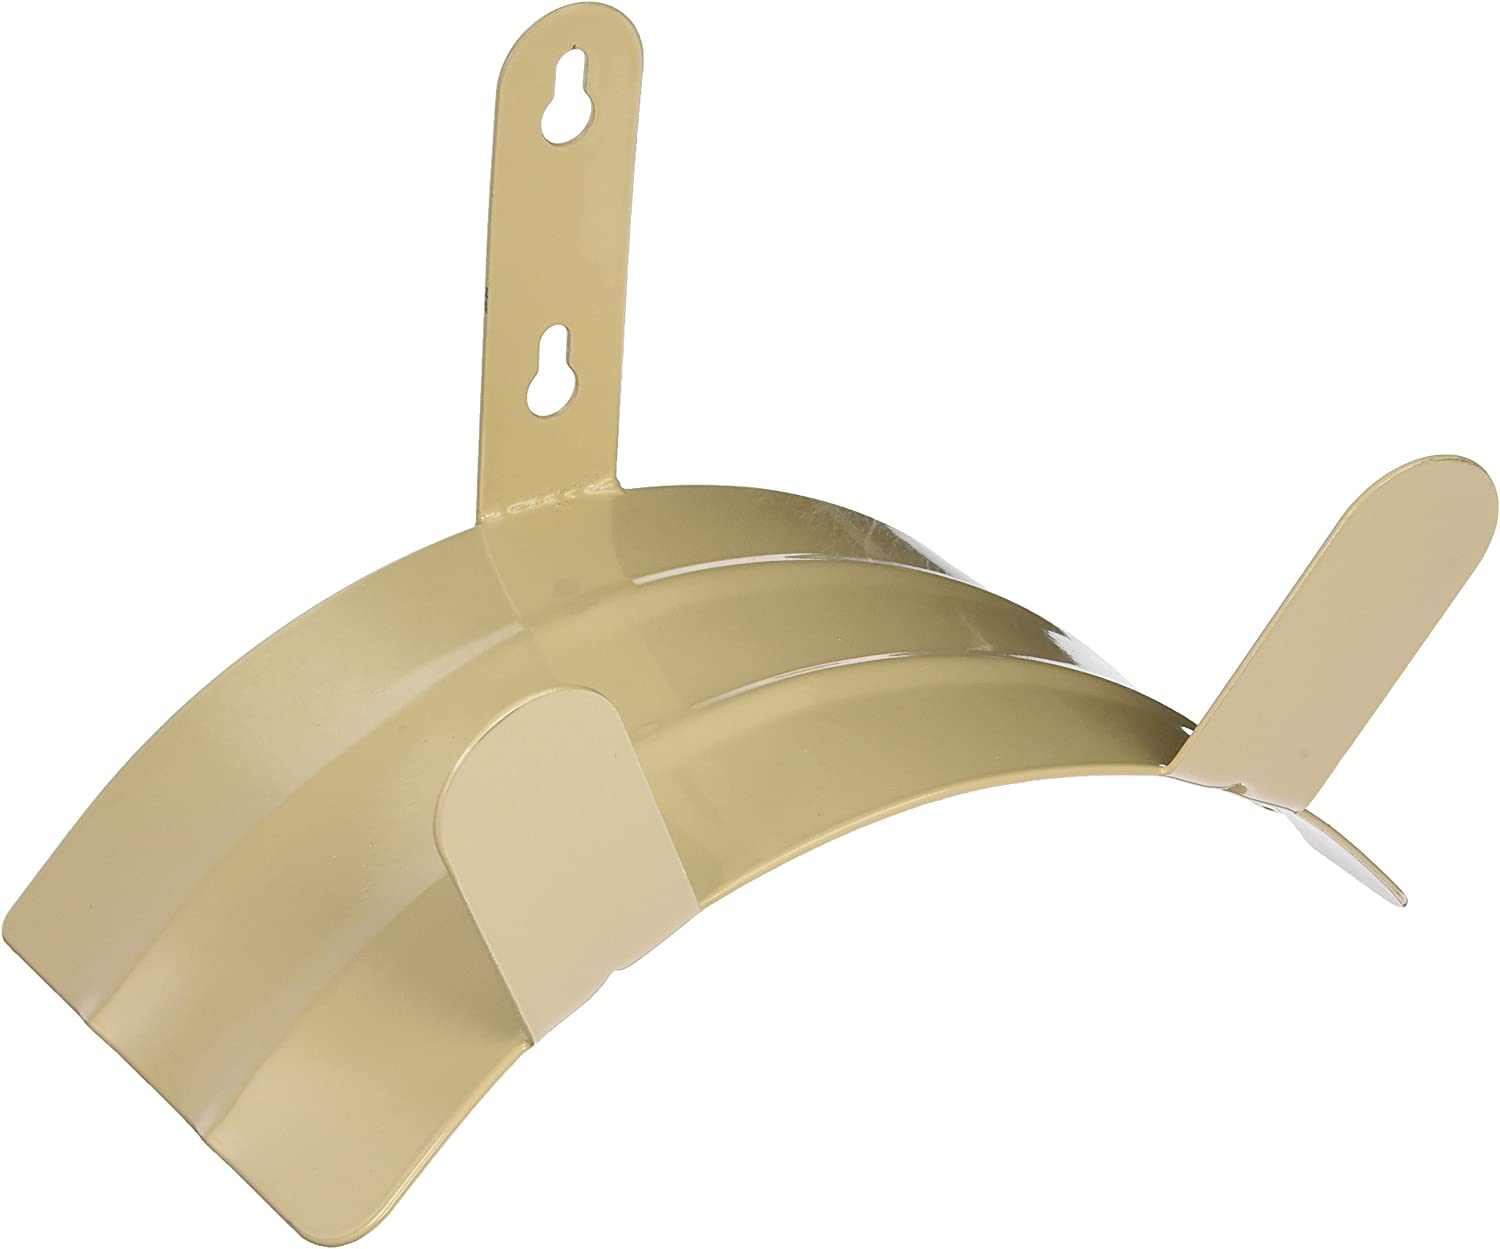 Liberty Garden Products 125-Feet of 5/8-Inch Tan Liberty 691-2 Basic Wall Mount Garden Hose Butler-Holds 125-F